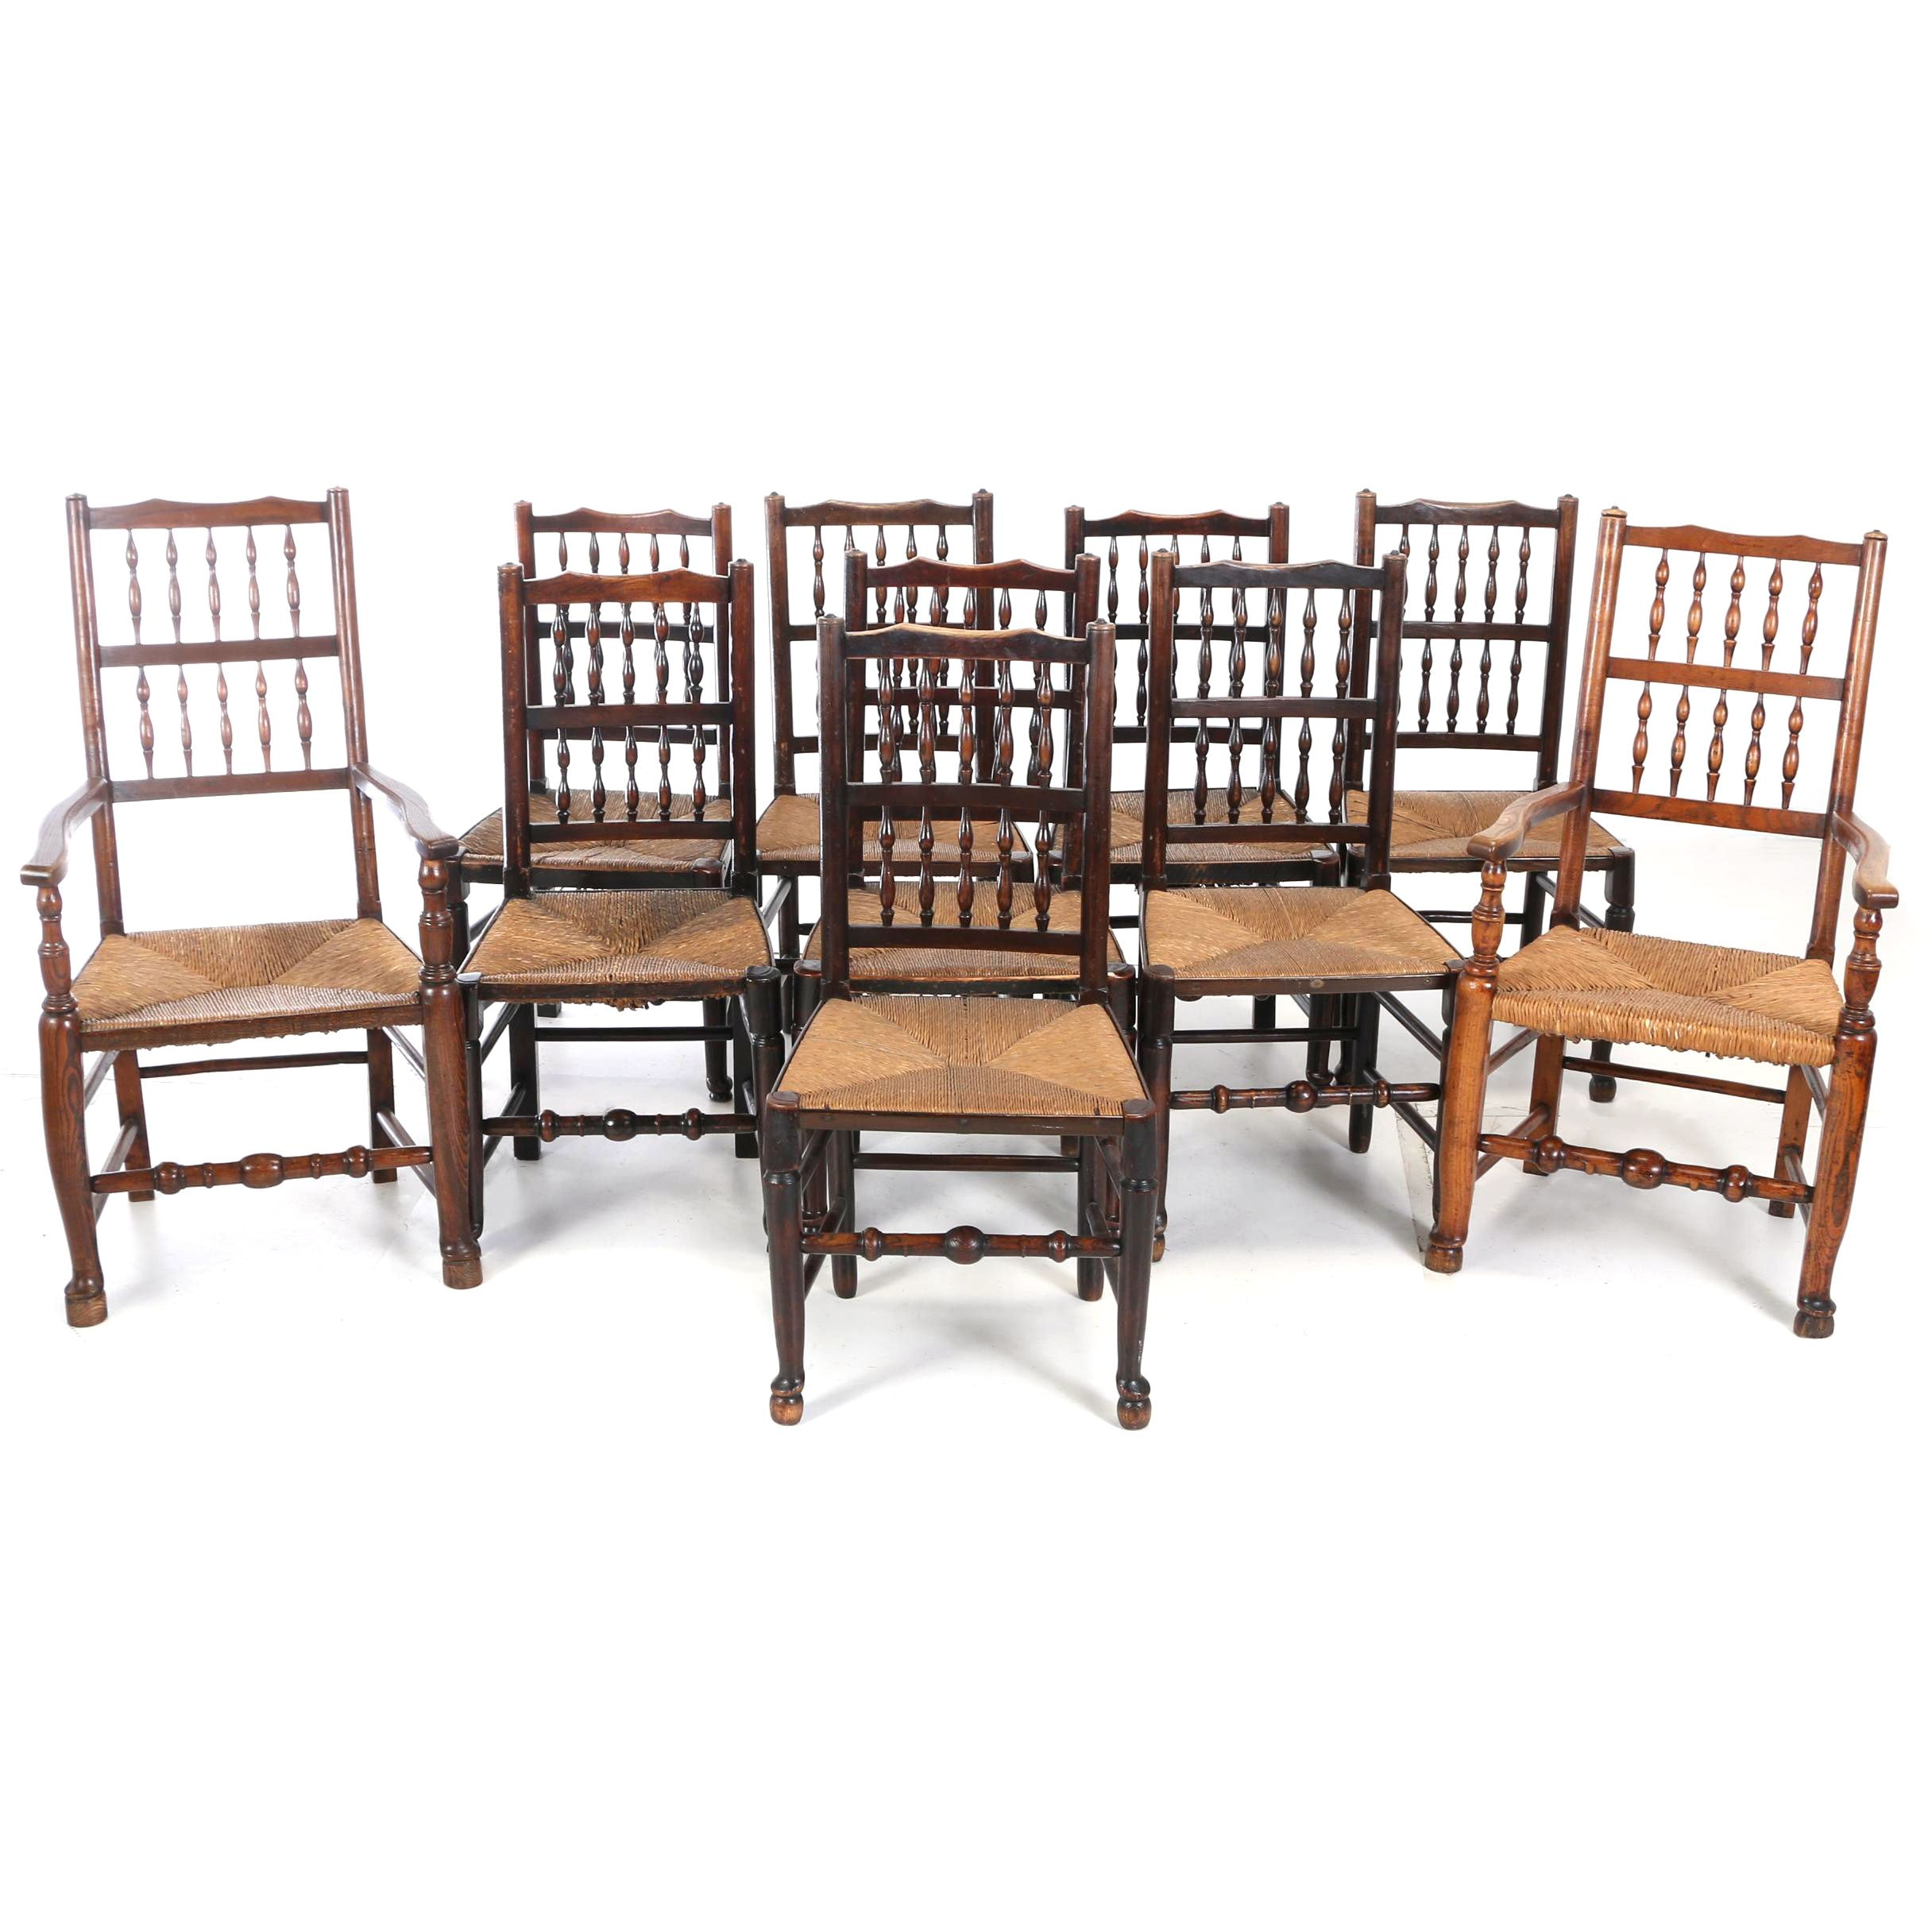 Matched Set of Ten Lancashire Elm, Oak, and Walnut Dining Chairs, 19th Century